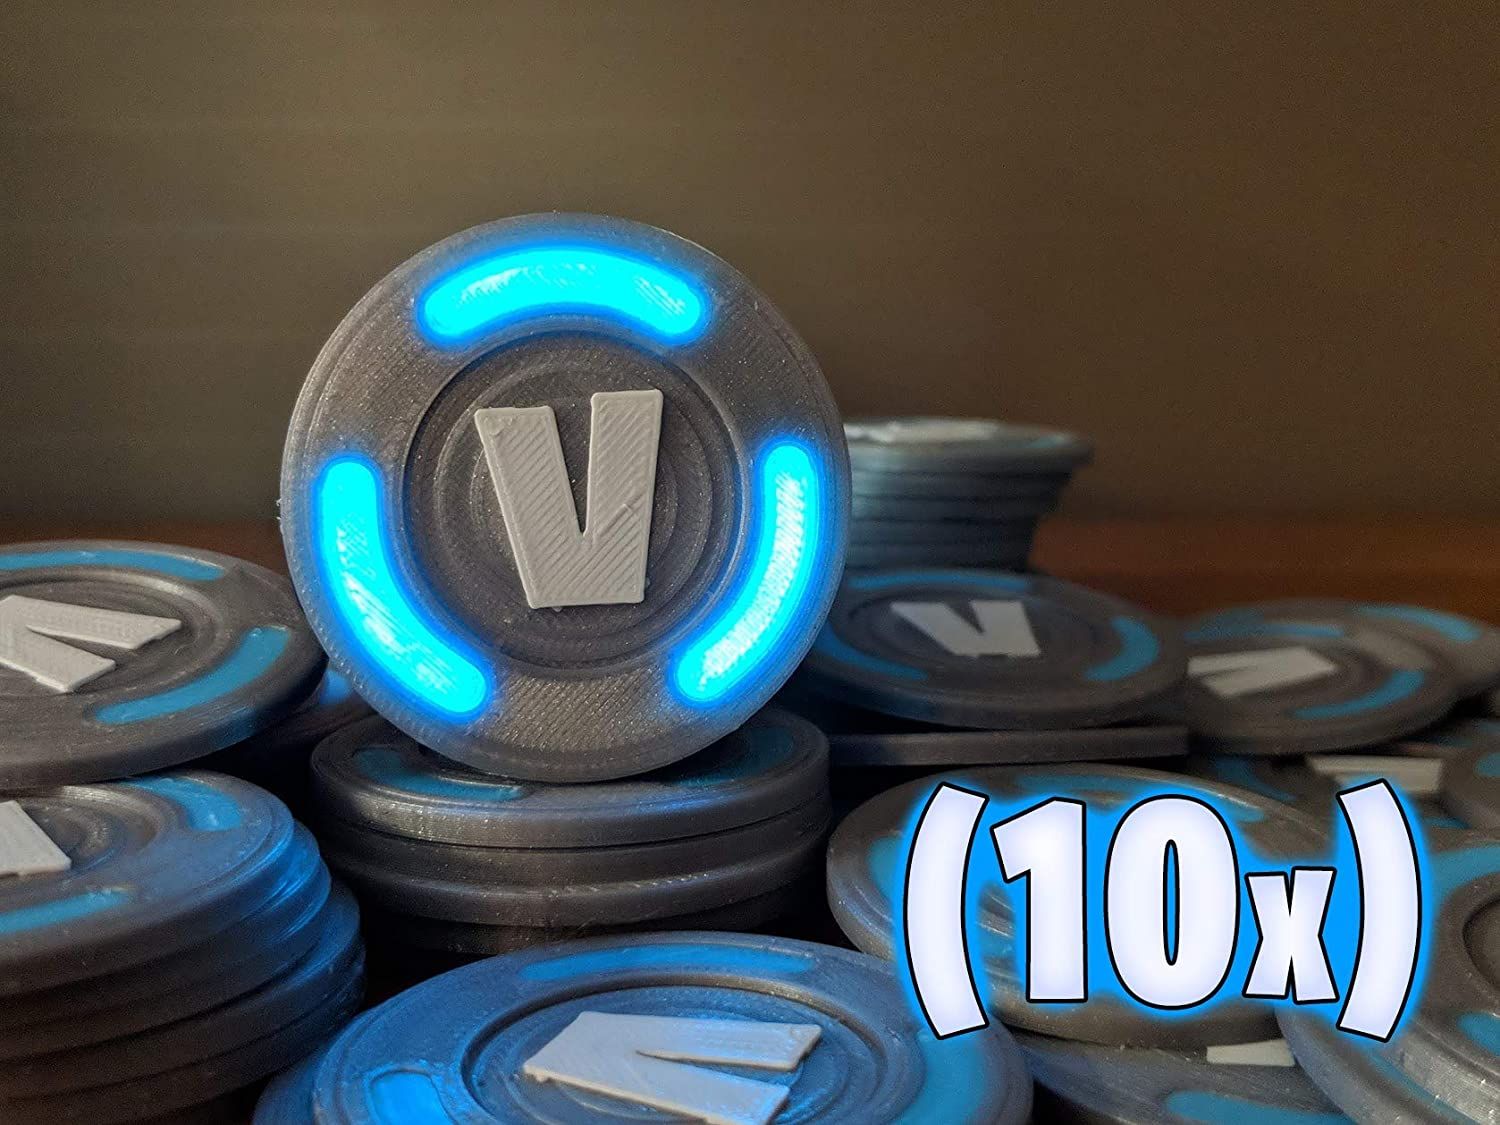 Glowing Fortnite V-Bucks (10x) | vbucks fortnite coins llama fortnite battle royale gifts gamer gifts fortnite birthday gift xbox ps4 pc